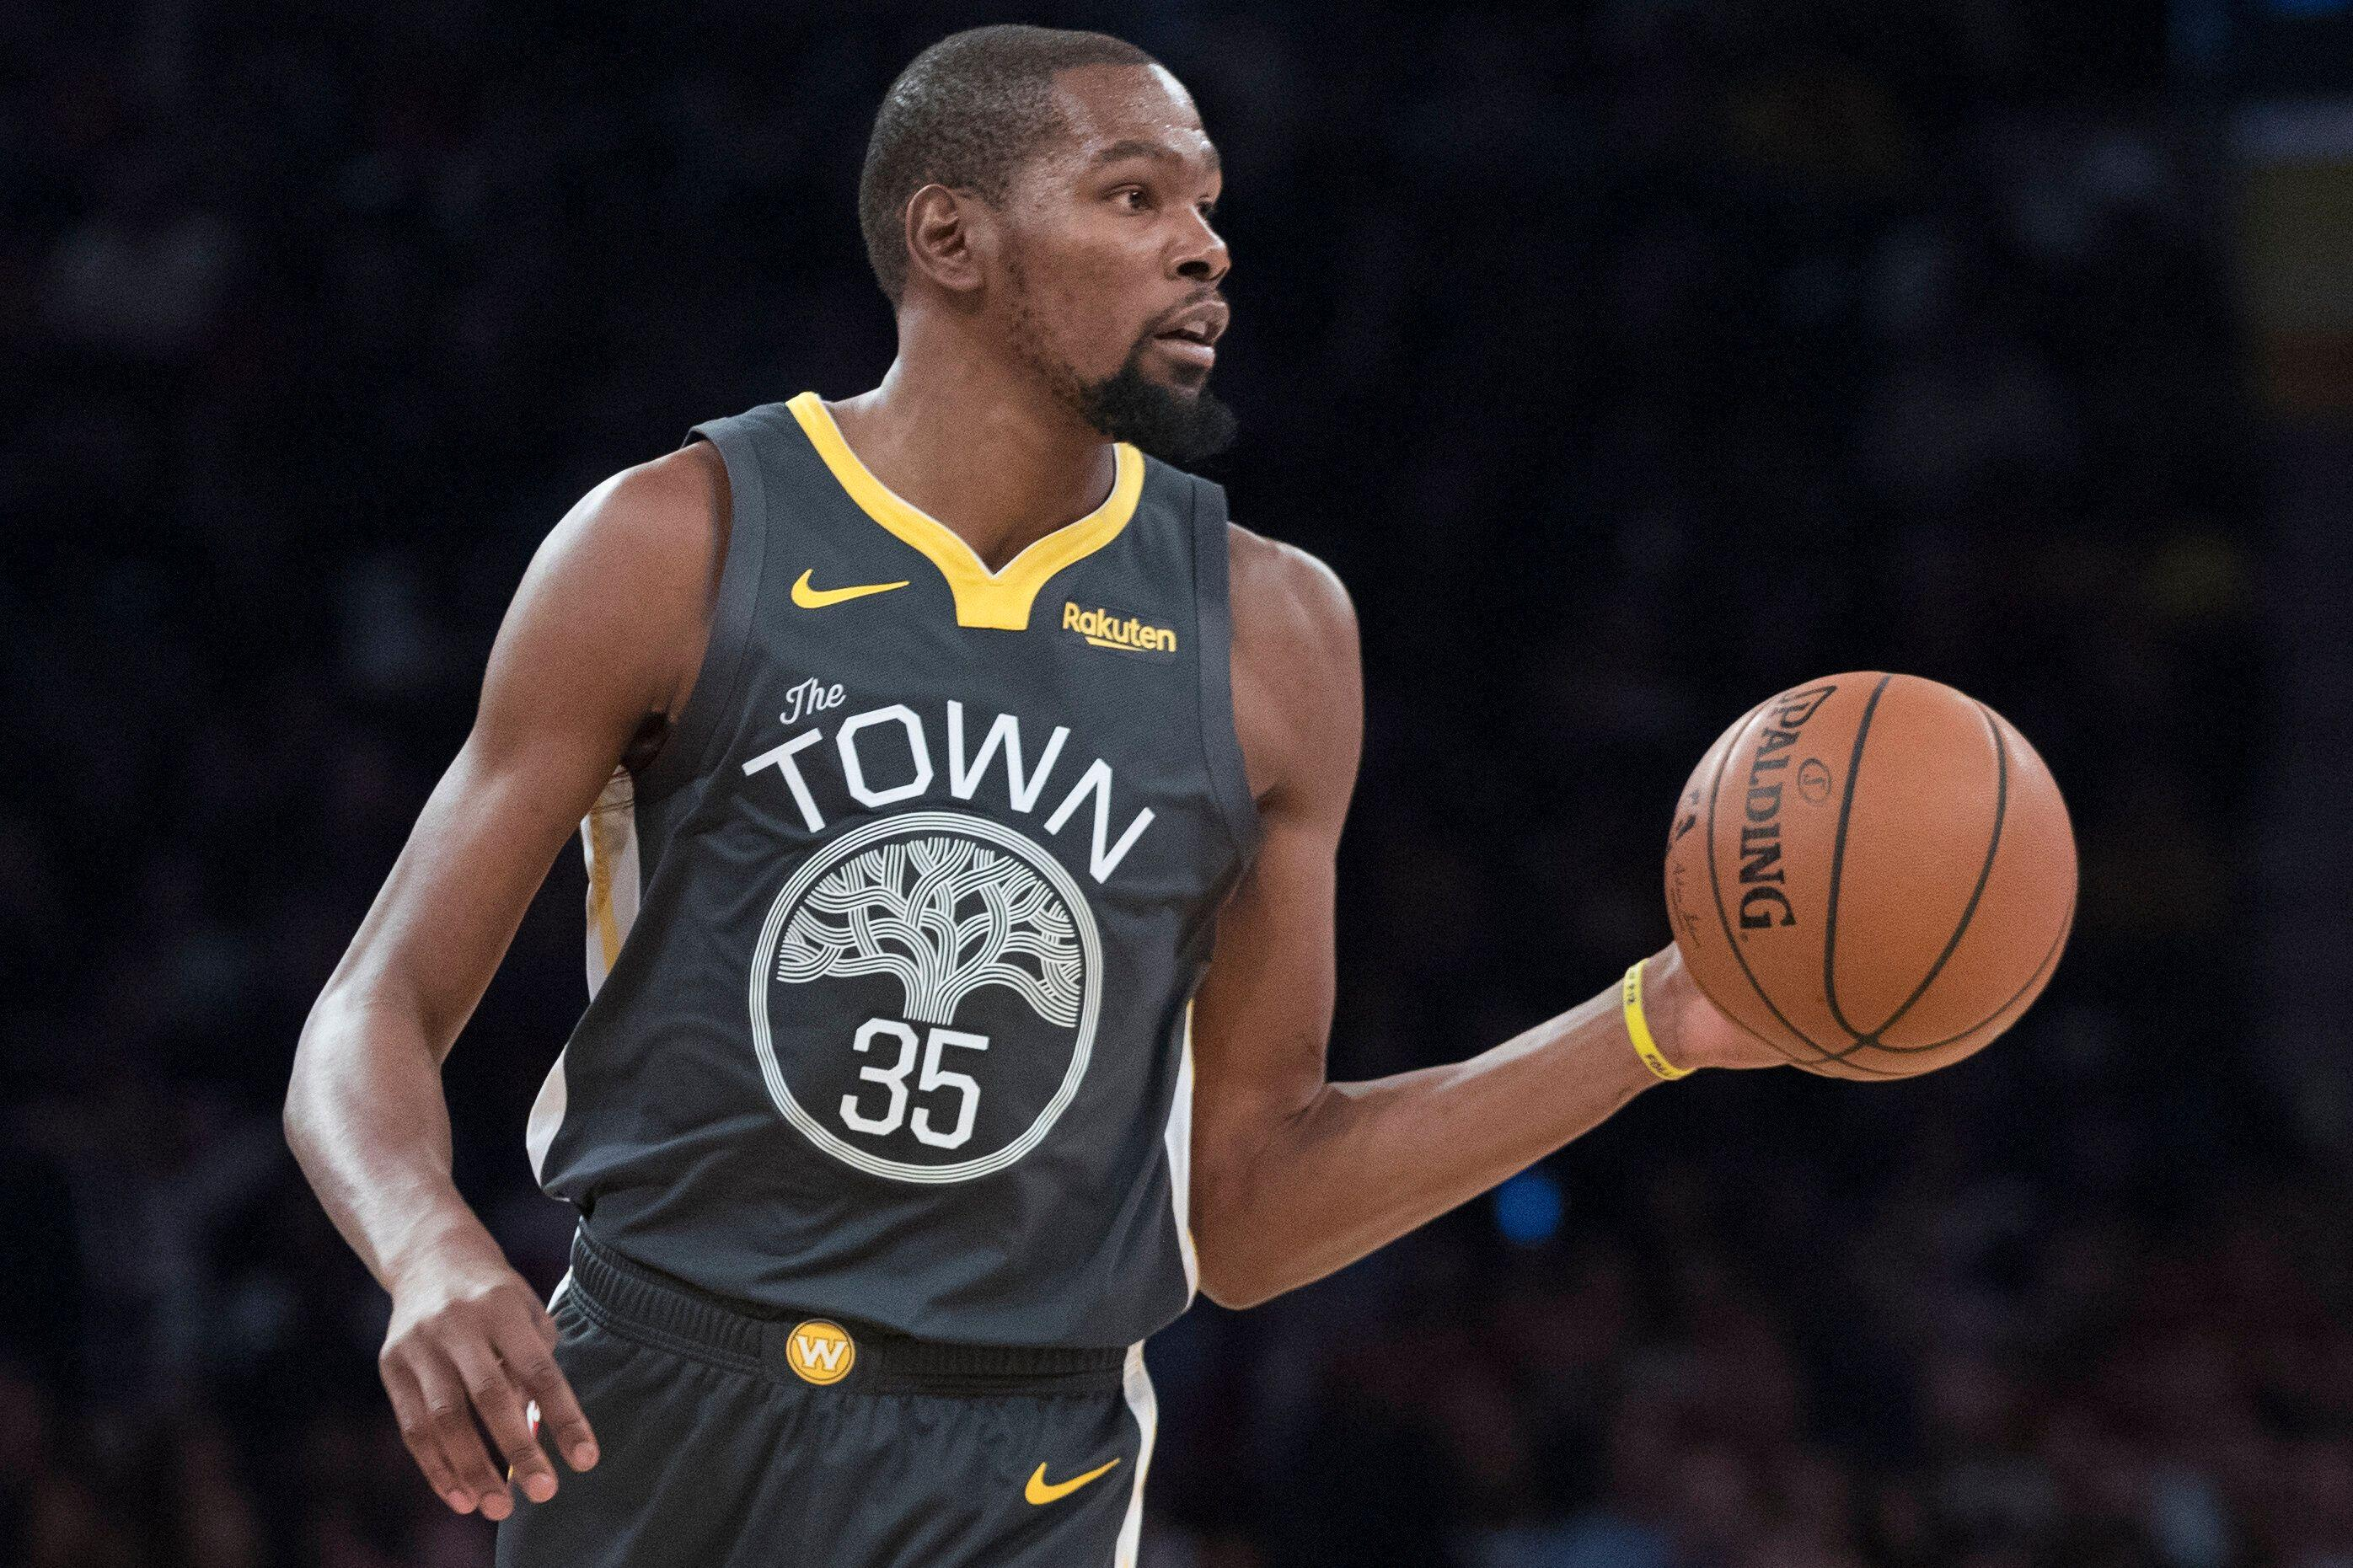 Knicks Nba Finals Odds Up Thanks To Kevin Durant